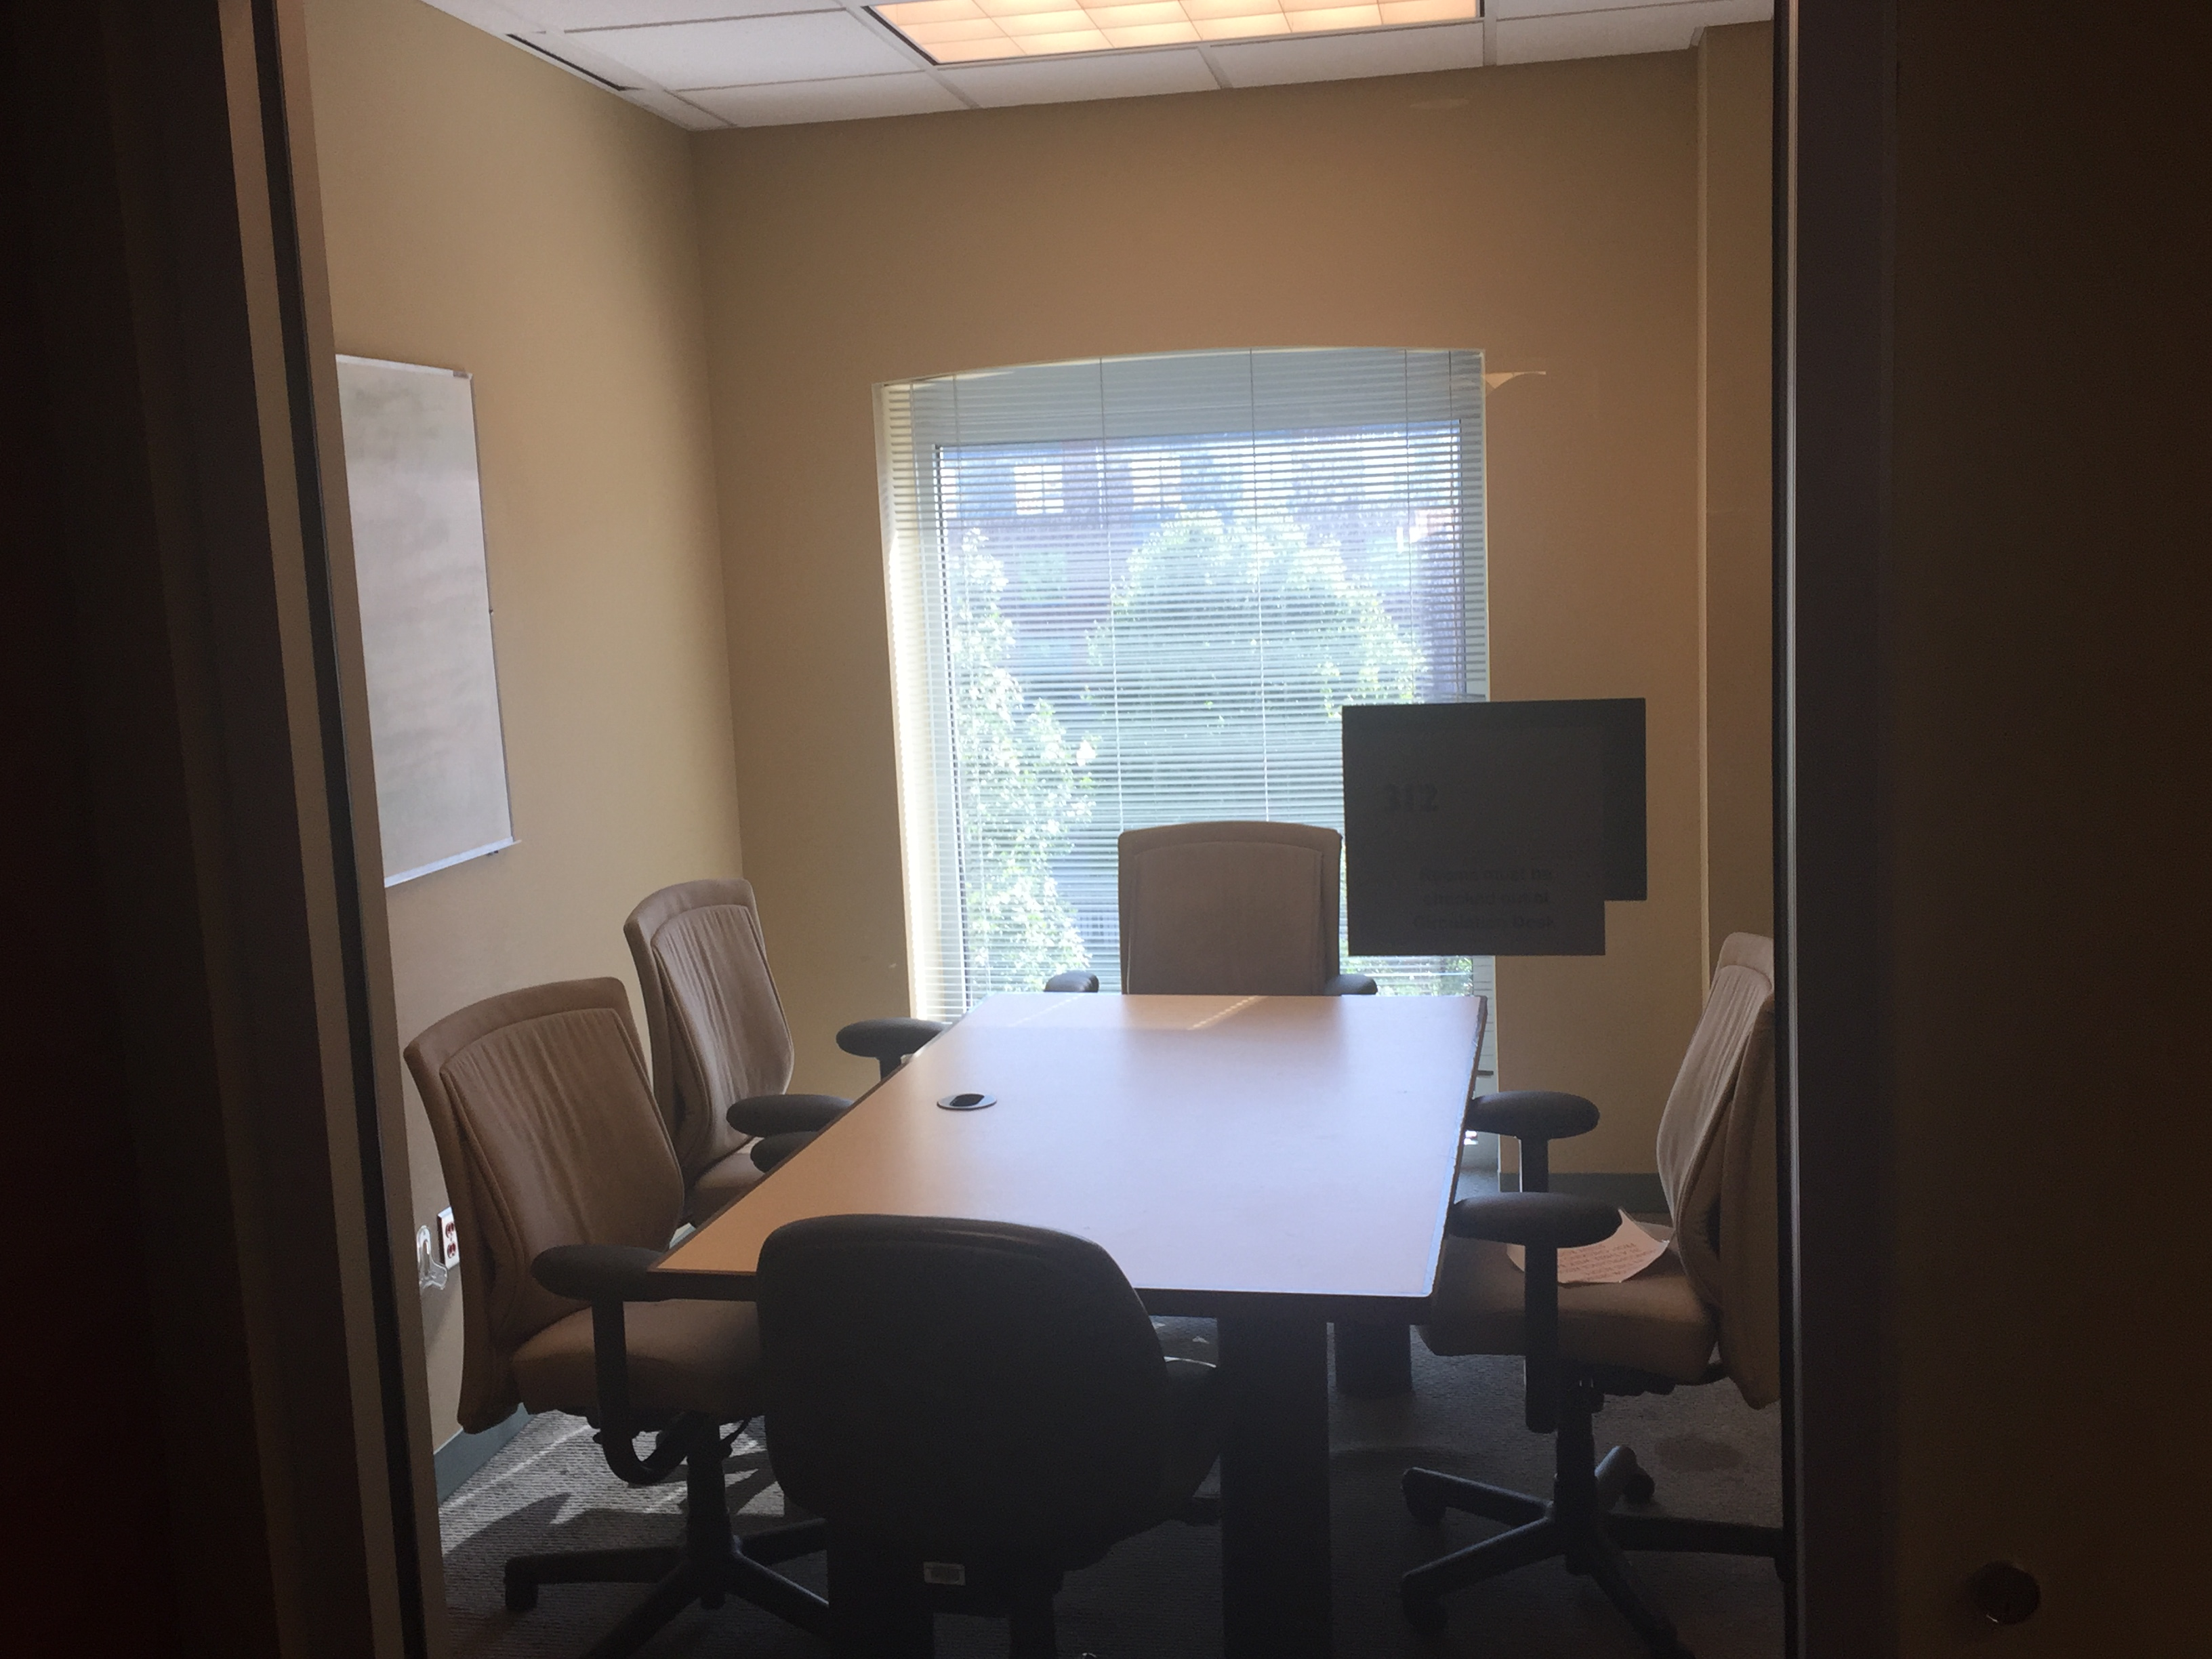 One of the private study rooms at Howard